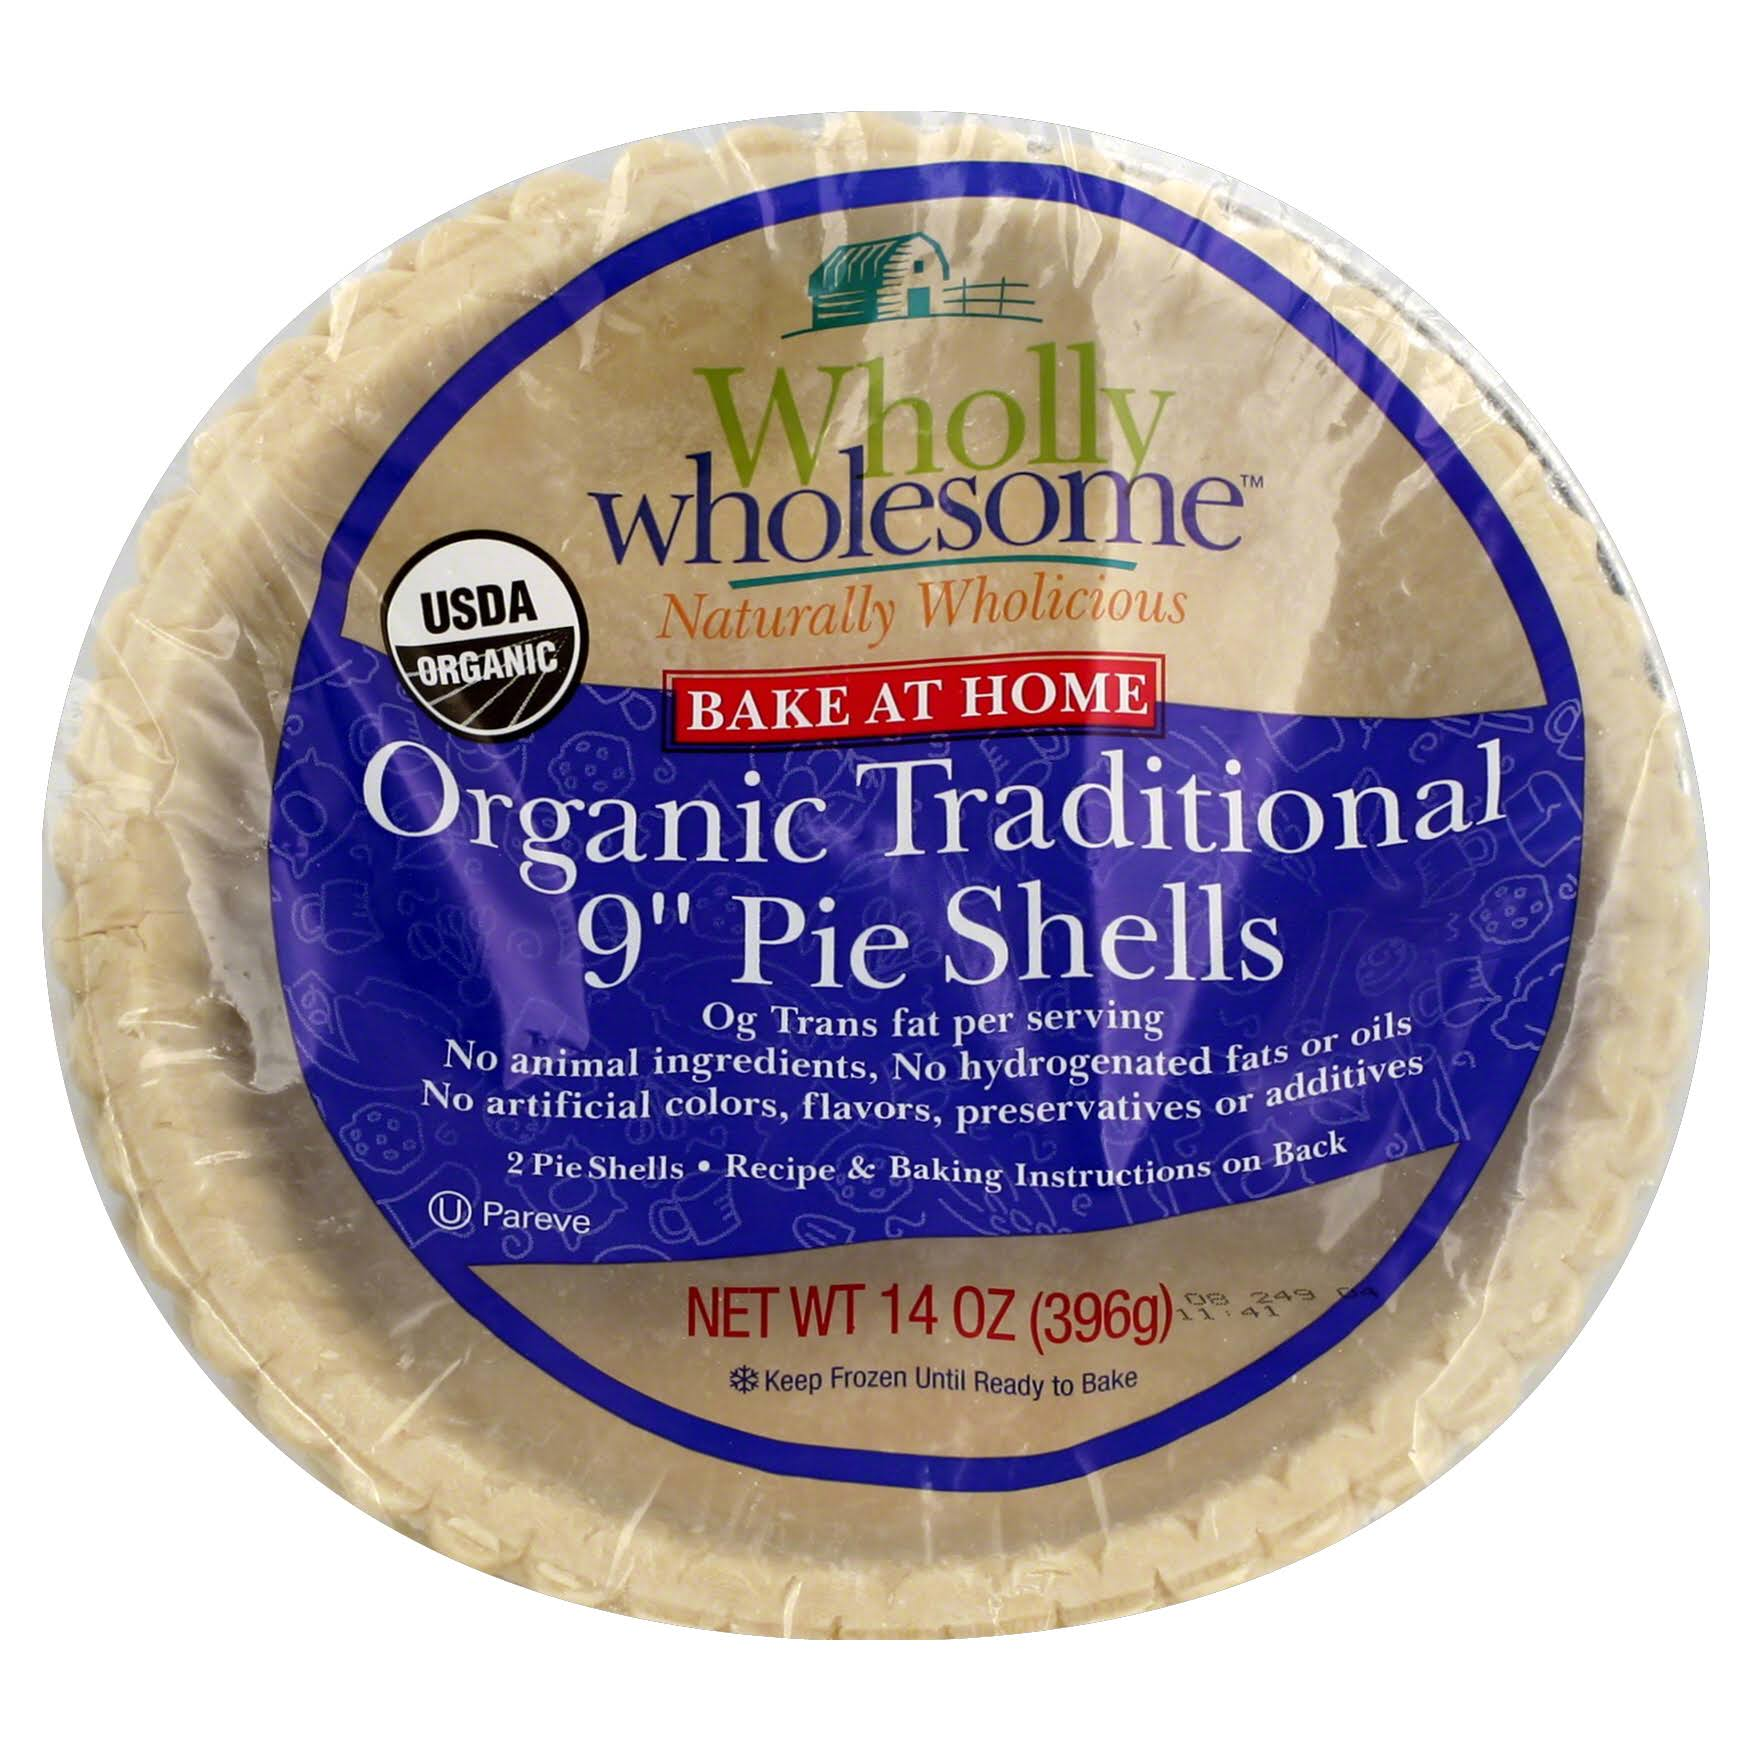 Wholly Wholesome Bake At Home Pie Shells, Organic Traditional, 9 Inch - 2 shells, 14 oz